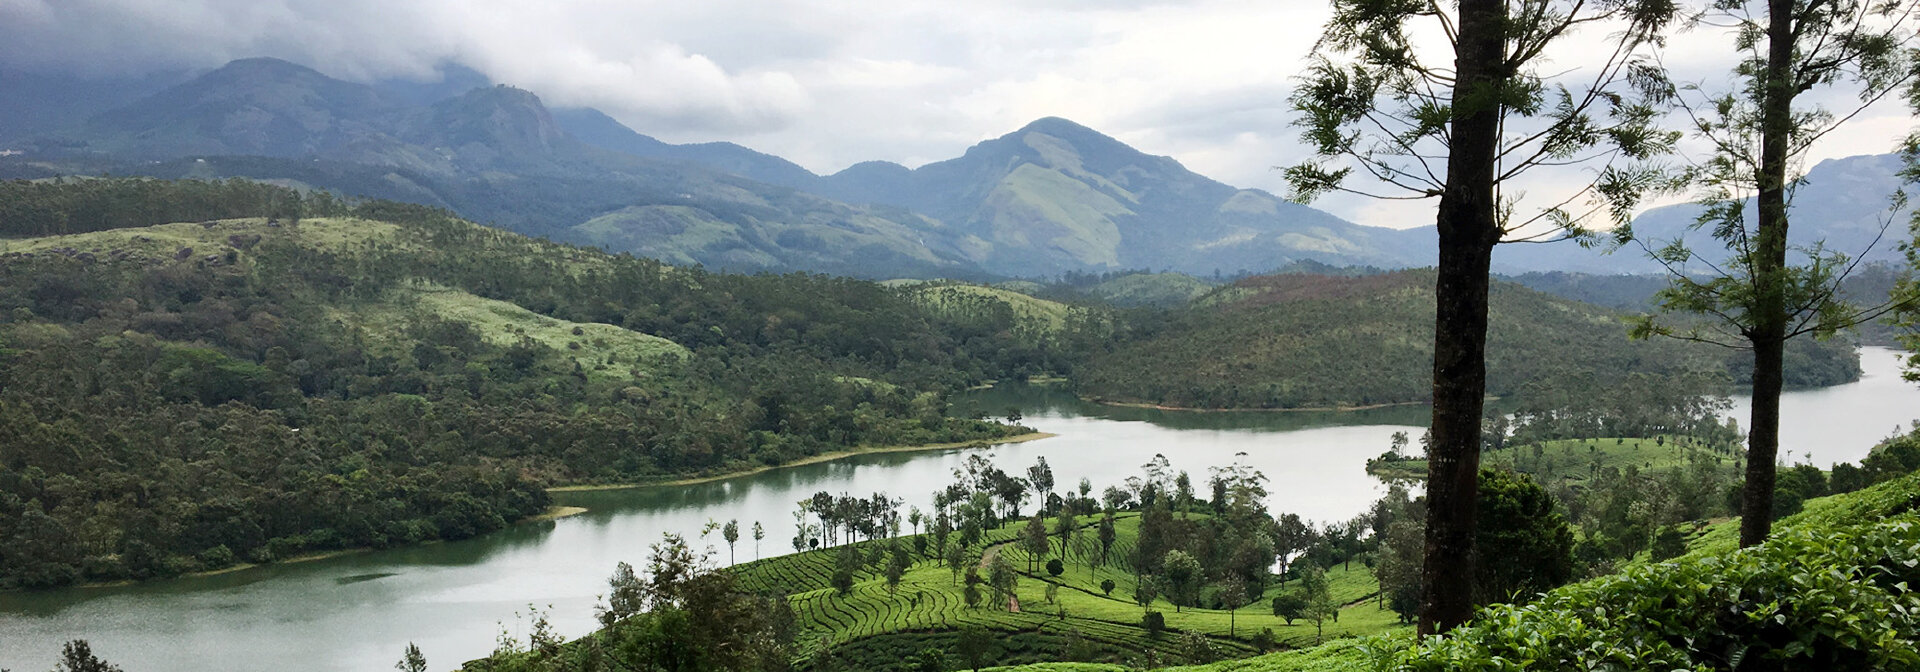 India: Kerala Spice & Tea Gardens